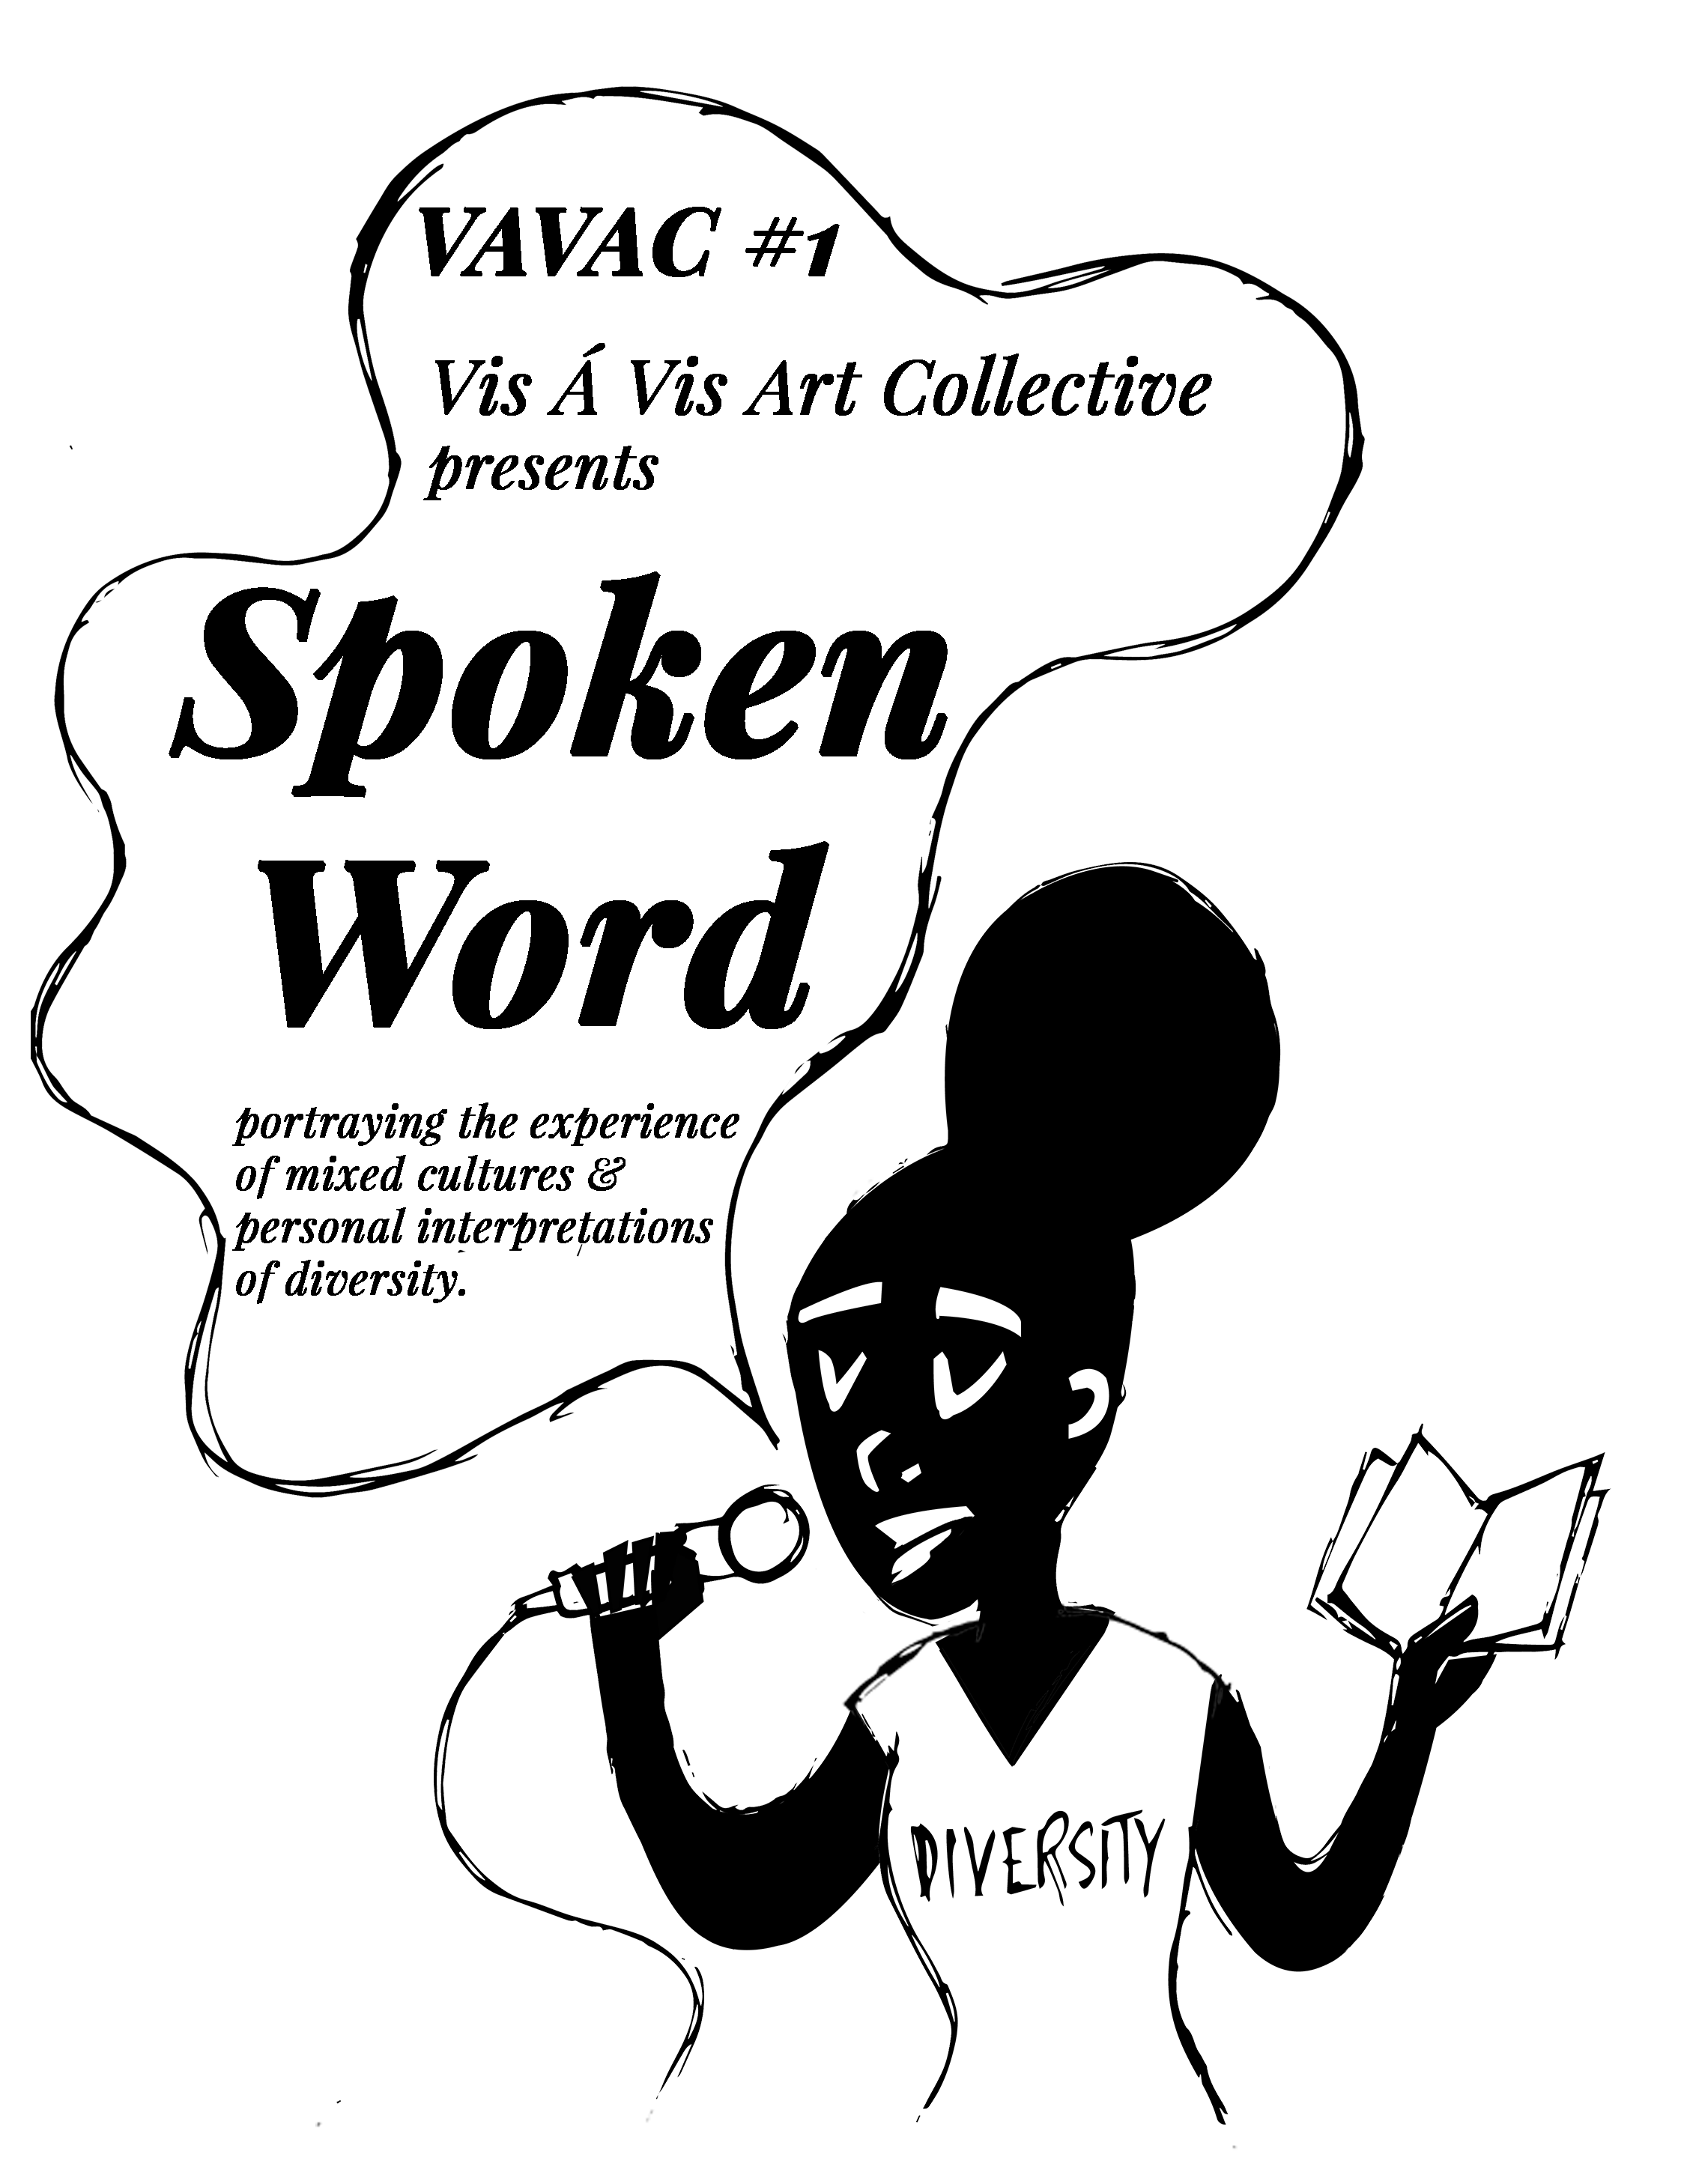 spoken word_image